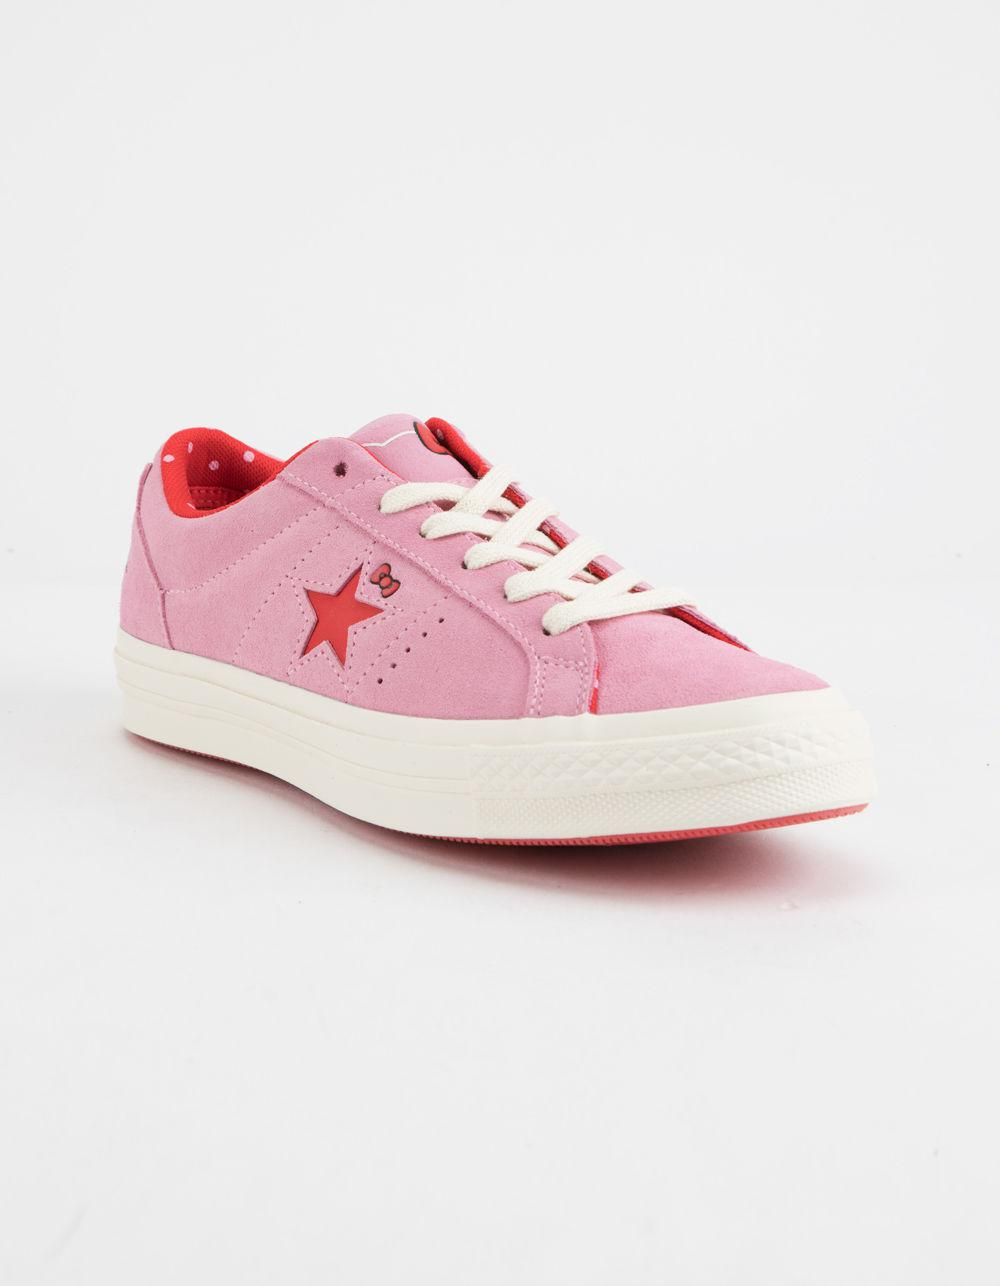 6dbfb378a4beb8 Lyst - Converse X Hello Kitty One Star Prism Pink   Firey Red Womens Shoes  in Pink - Save 38%